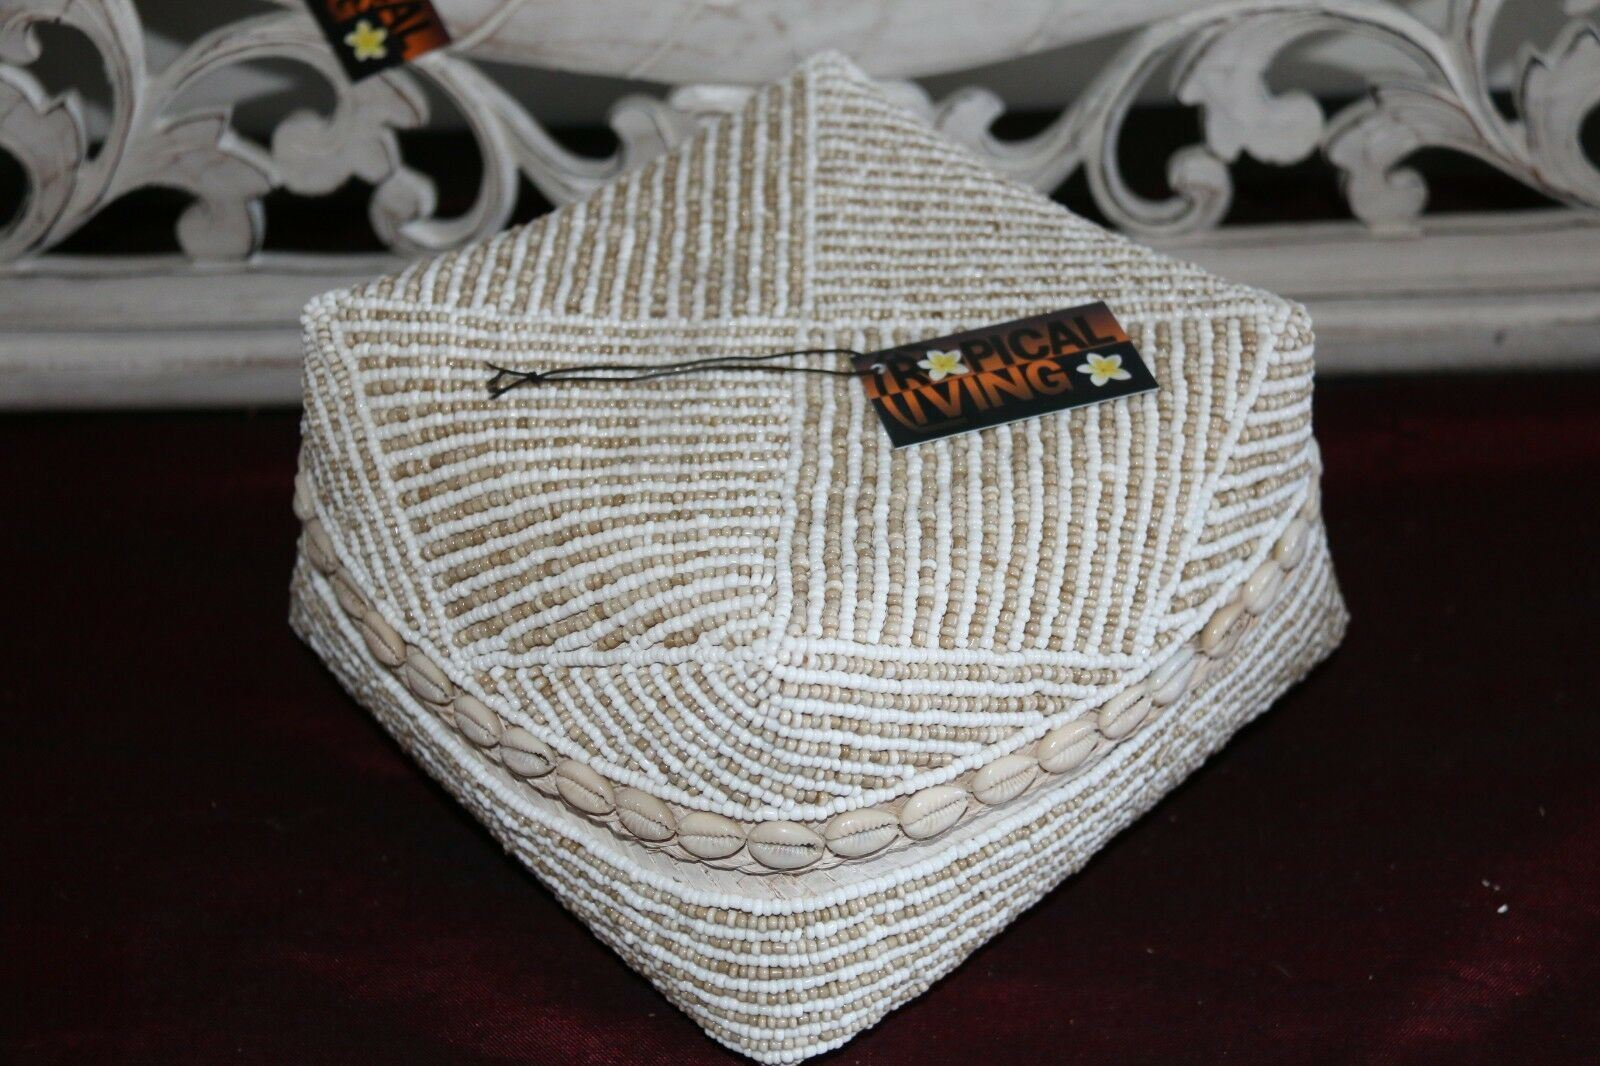 NEW Balinese Hand Crafted Woven & Hand Beaded Basket with Lid  - 3 Sizes - Bali